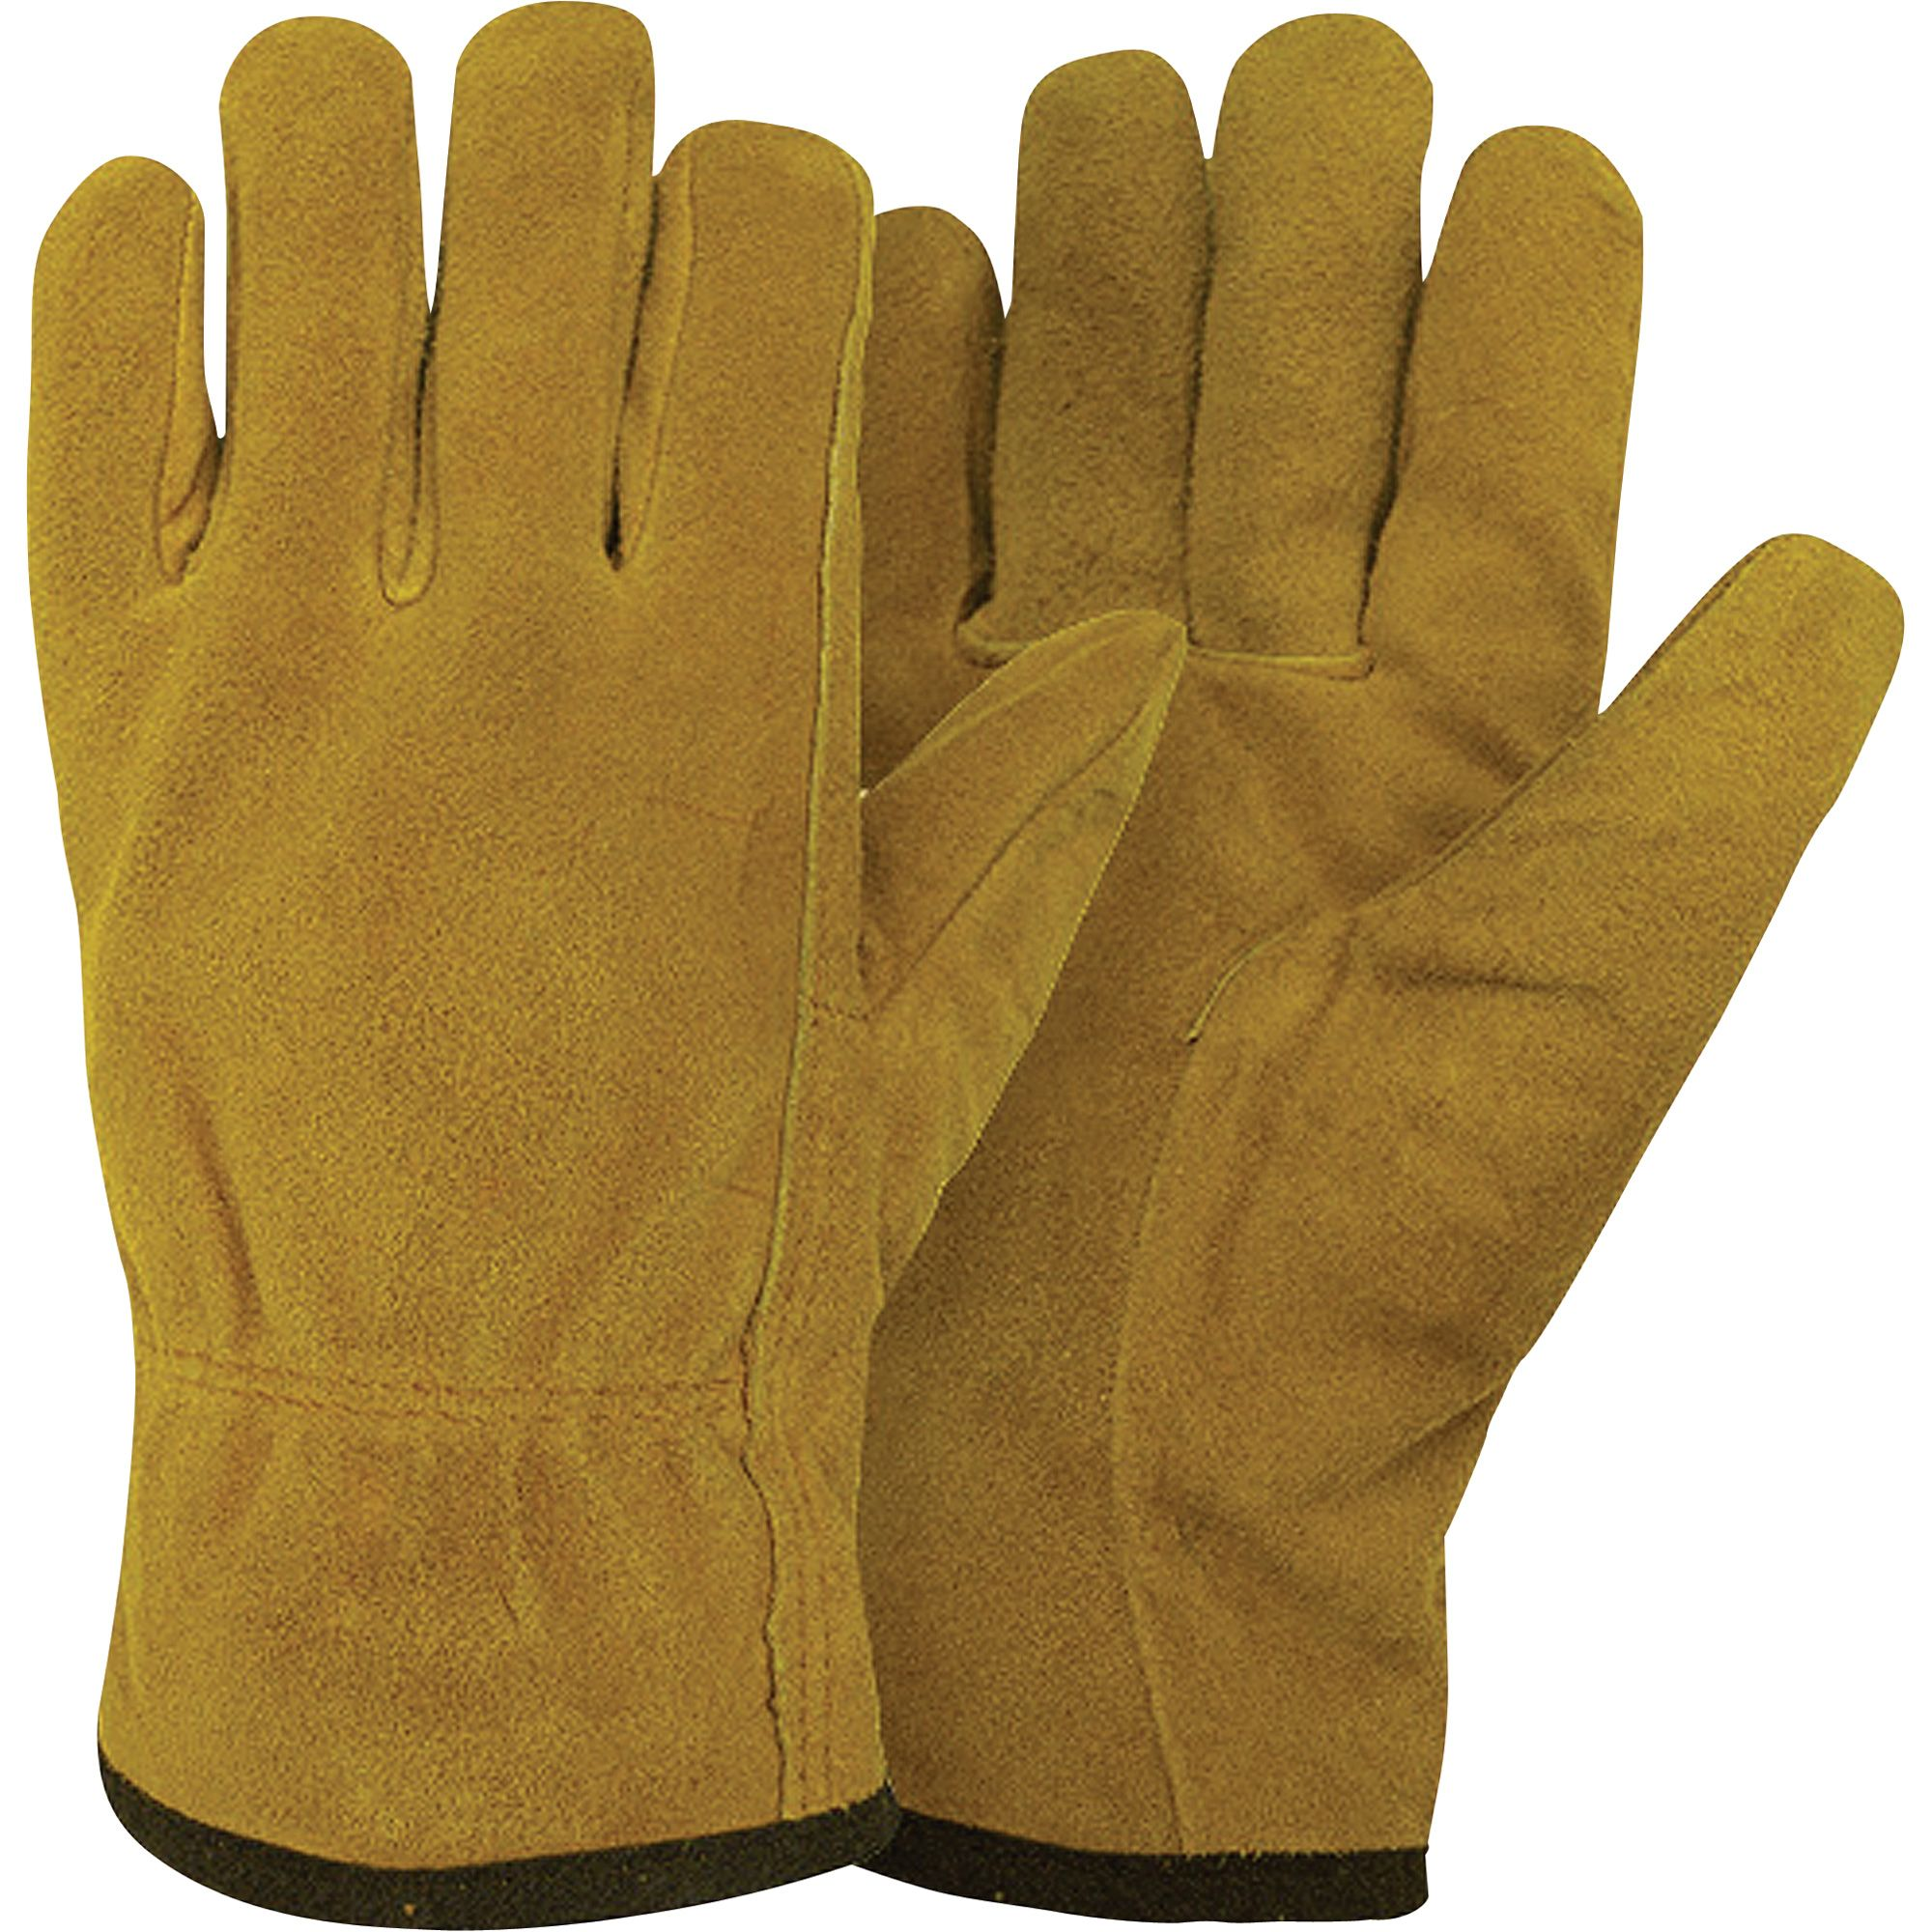 Leather work gloves with thinsulate lining - Hot Shot X Series Split Leather Pile Lined Driver Gloves